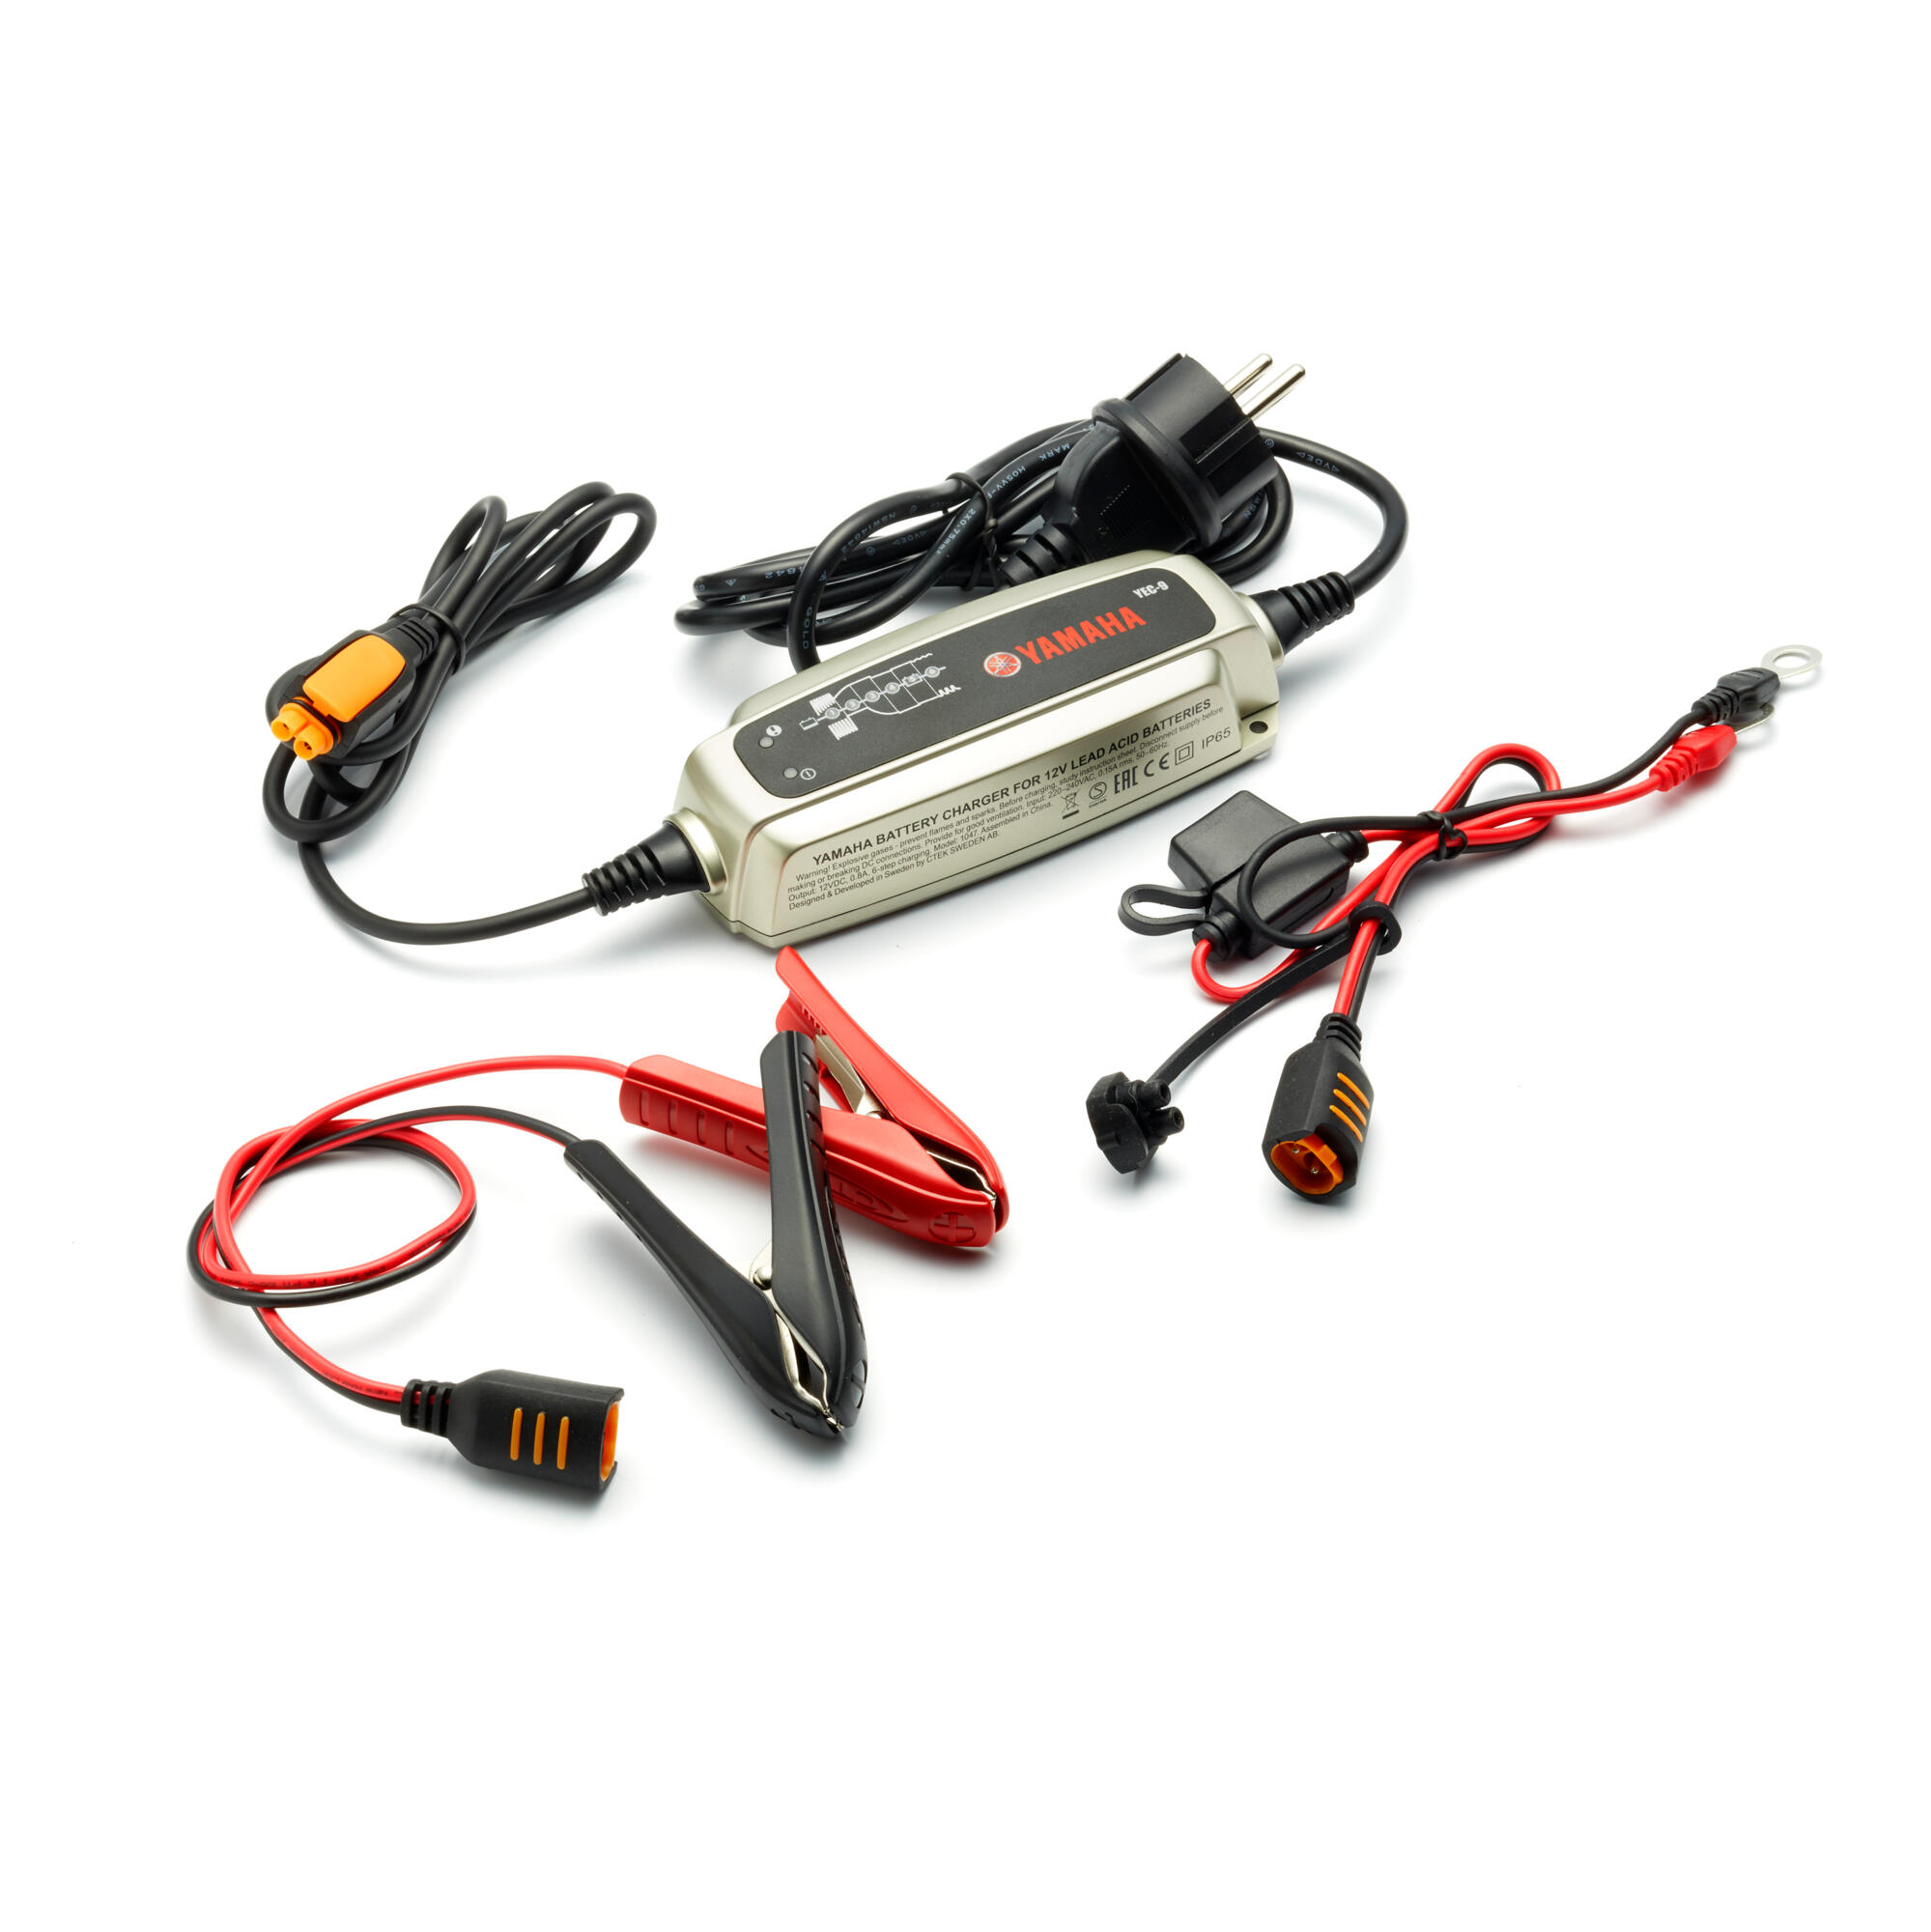 Yec 9 Battery Charger Yme Yec09 Uk 00 Website 12v Wiring Supplies